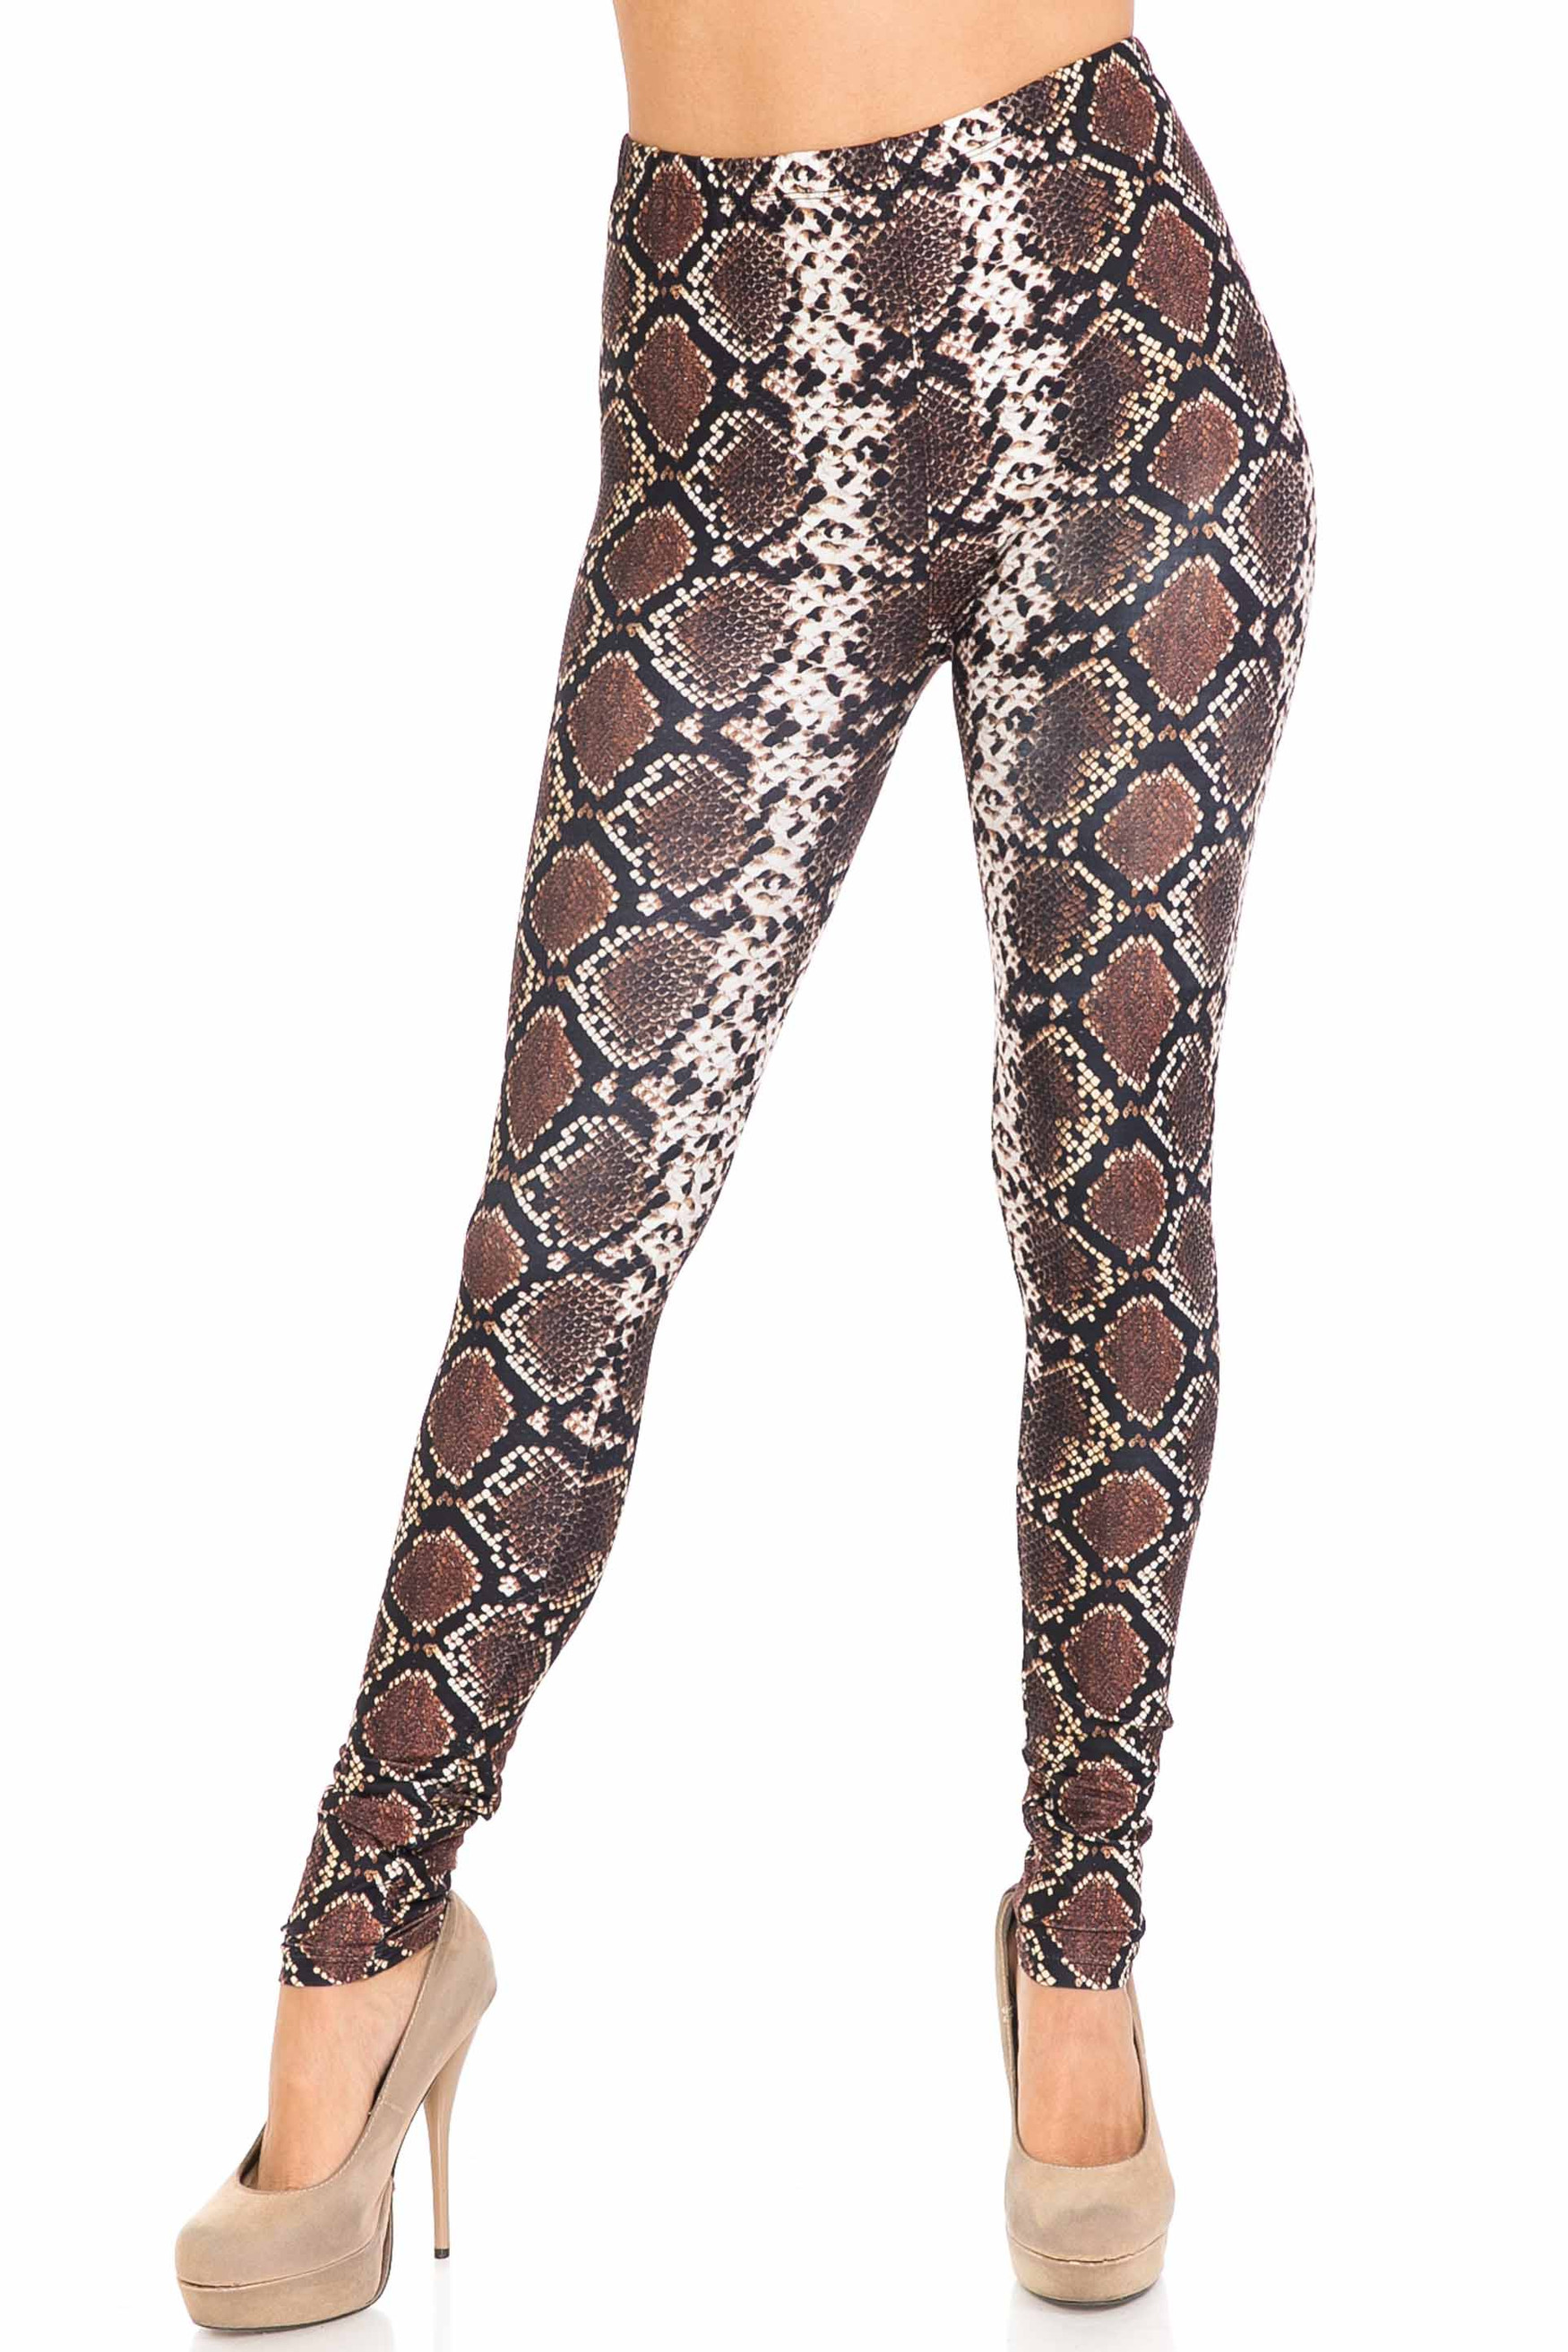 Front of Creamy Soft Steel Brown Plus Size Leggings - USA Fashion™ with a fitted skinny leg and full length hem.